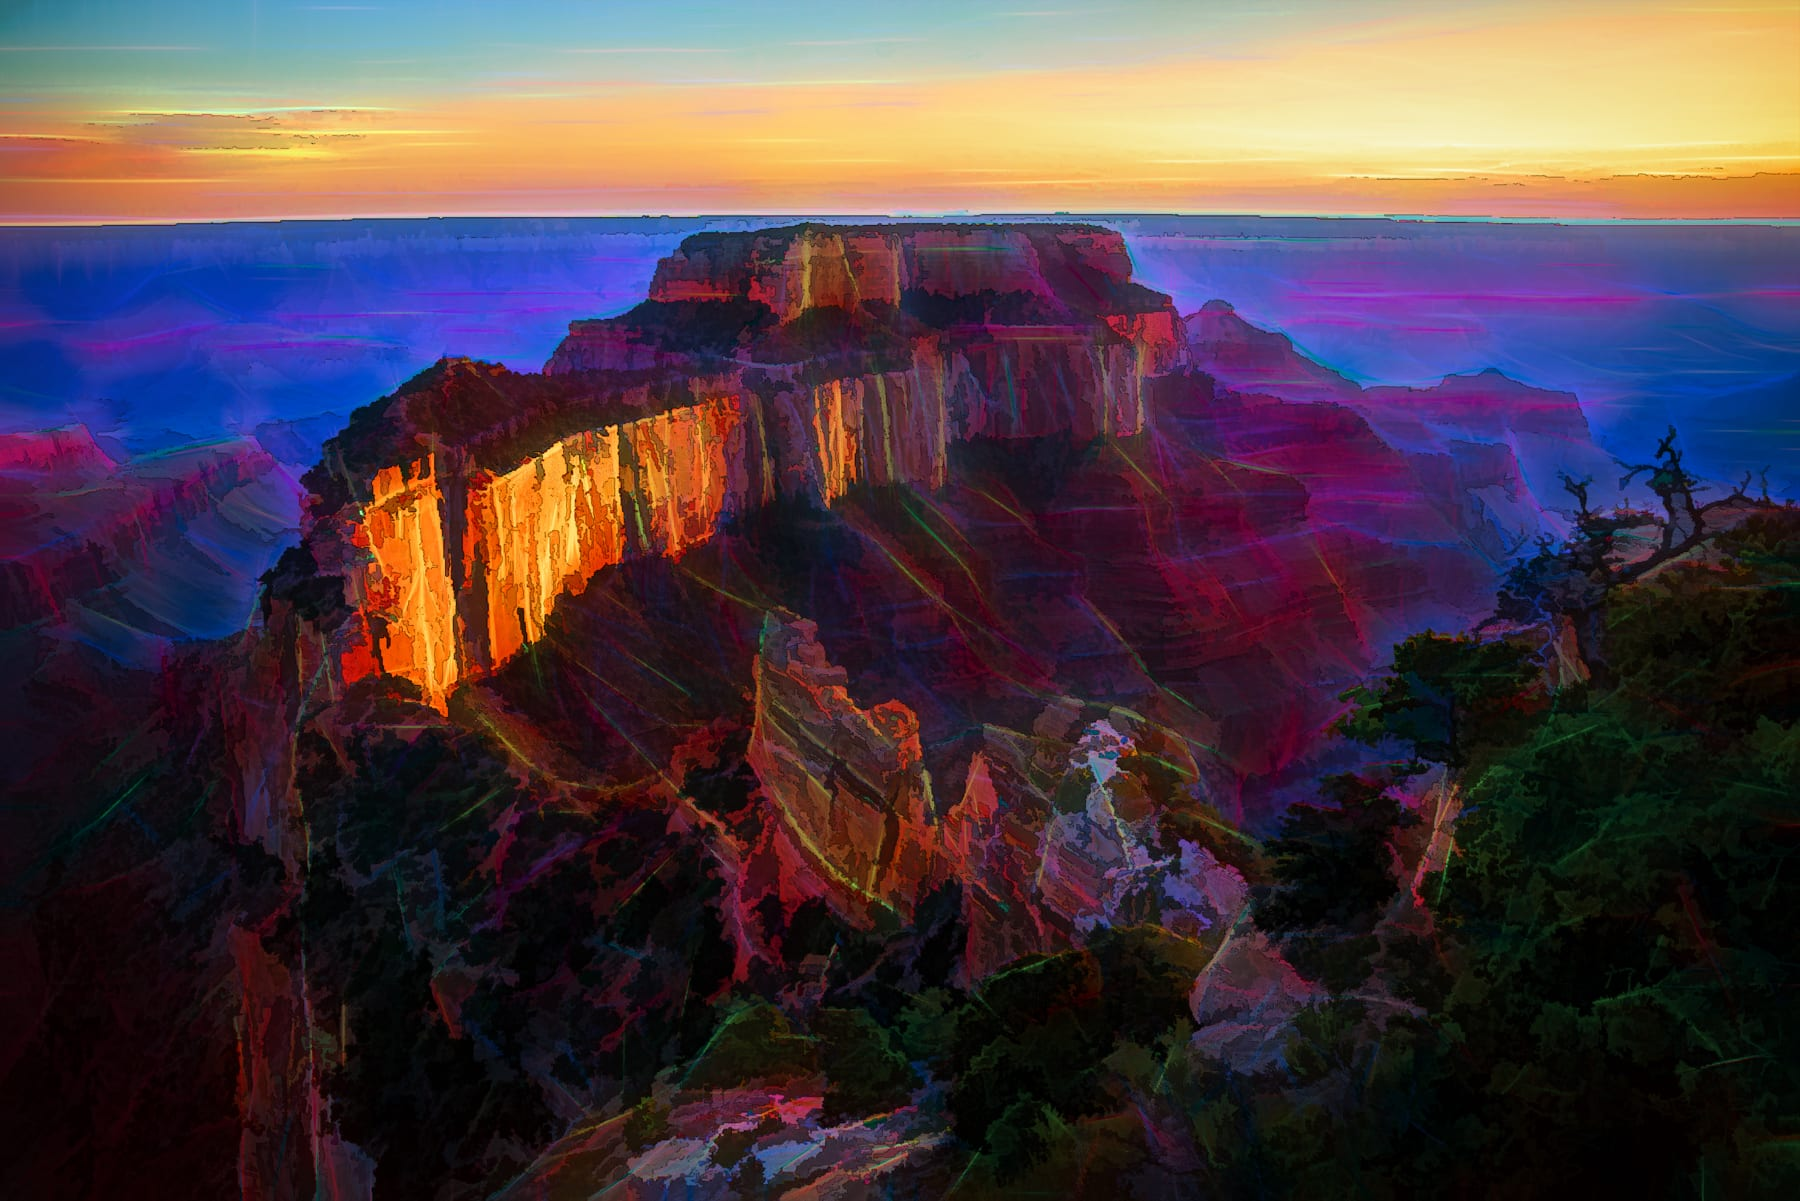 Alien world look of Wotan's Throne in Grand Canyon with colorful laser trip wires all over the canyon walls.